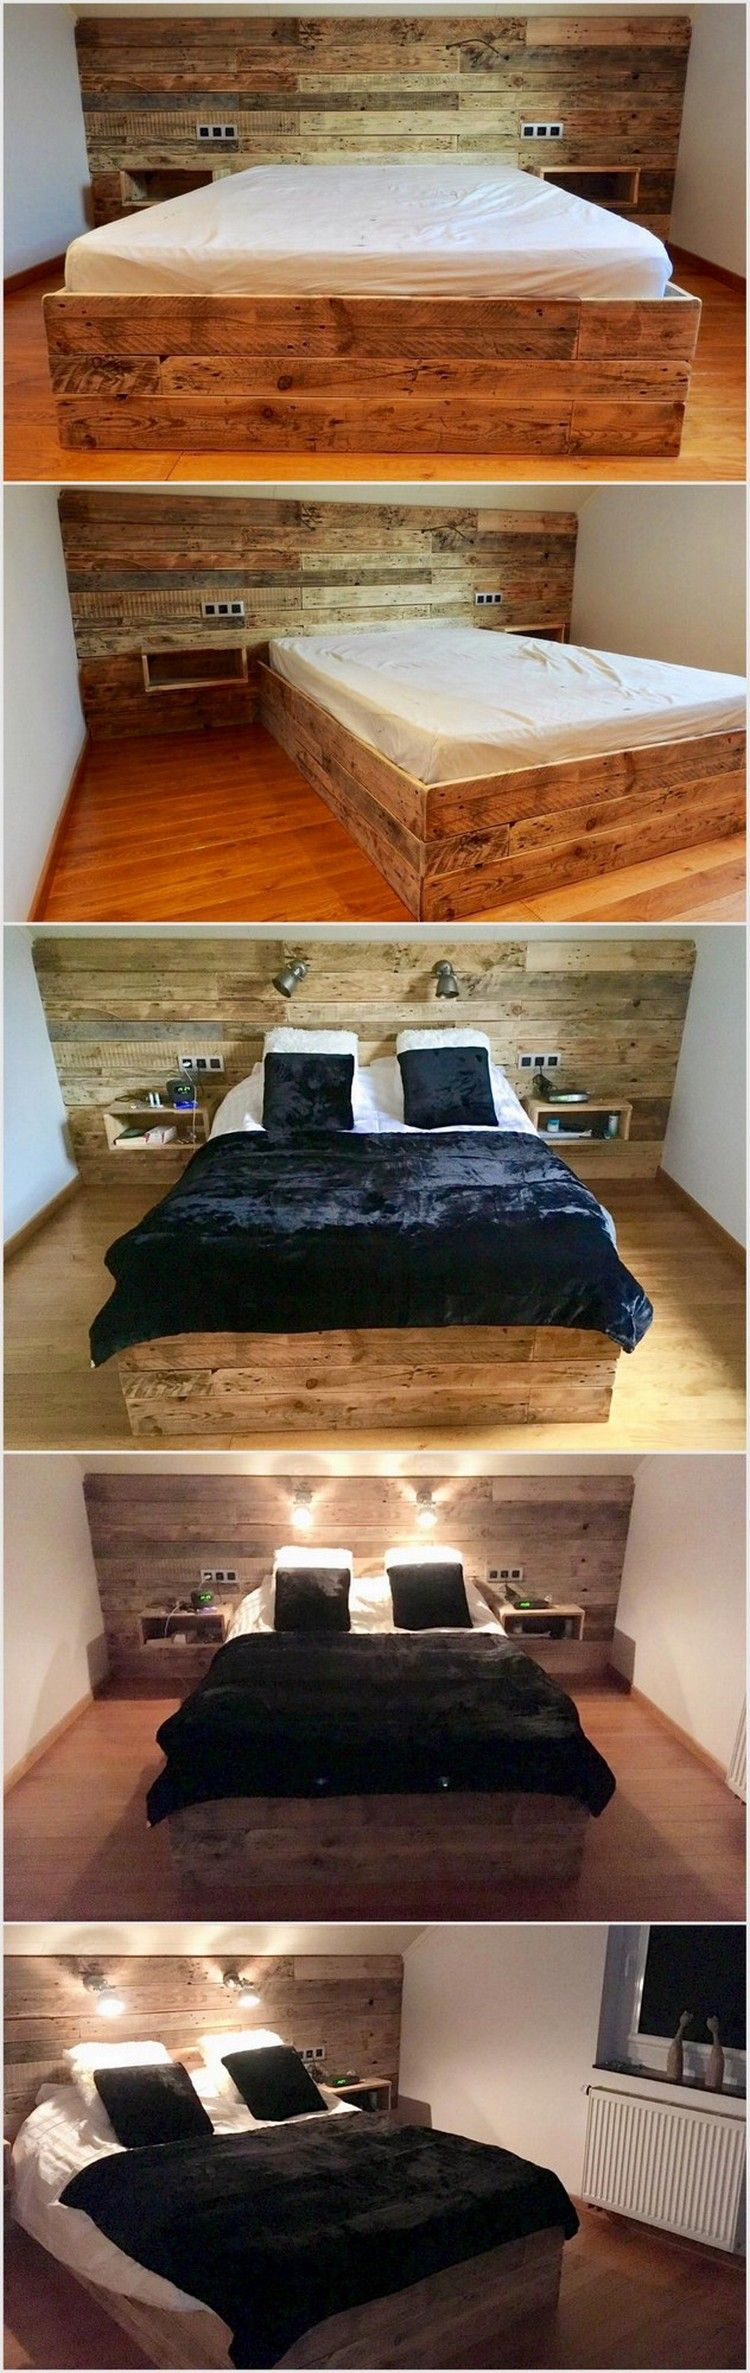 Classic Ideas for Wood Pallet Repurposing | Schlafzimmer, Betten und ...